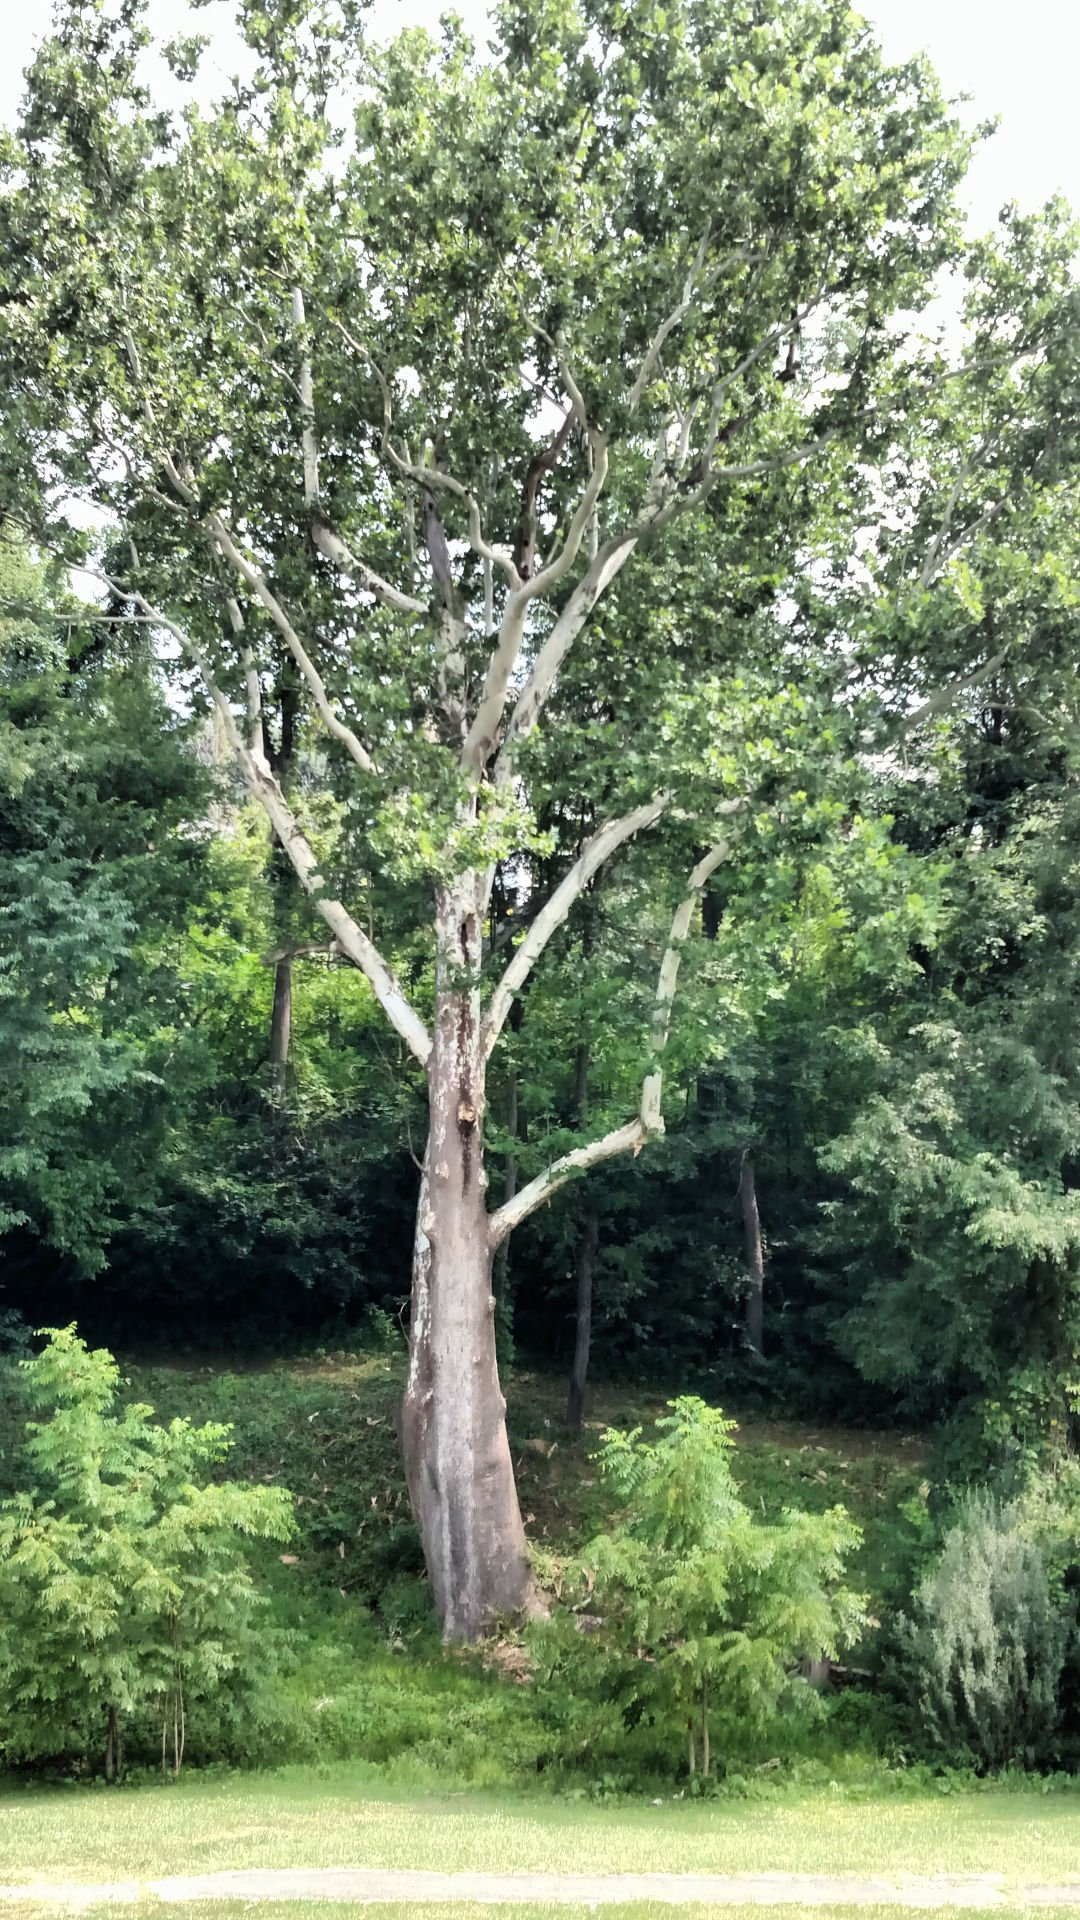 Town Park sycamore tree